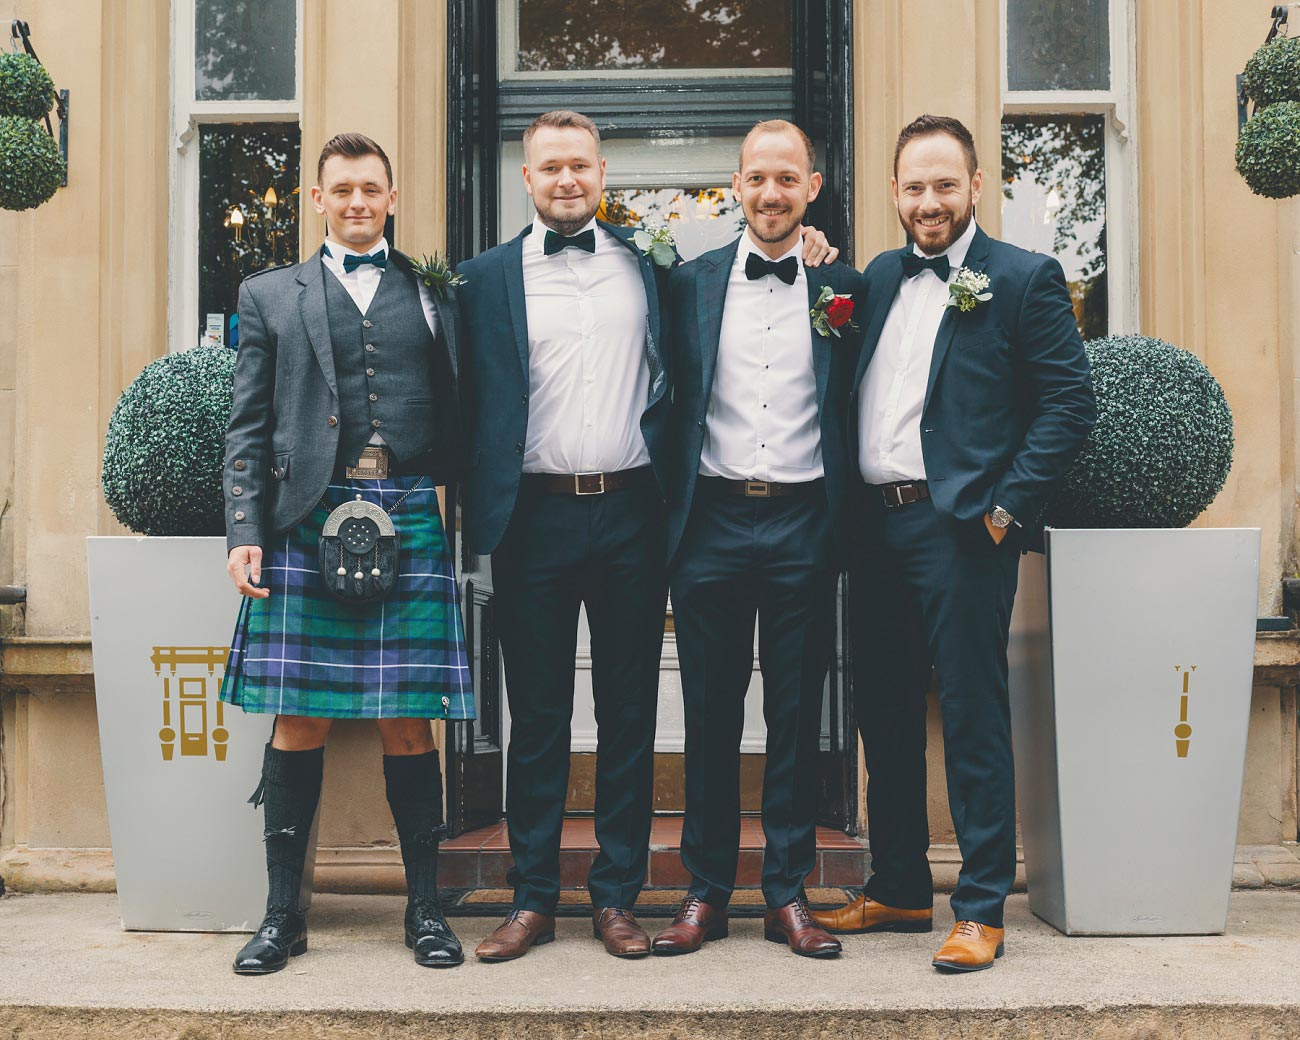 groom with groomsmes in suits and kilt, brown leather shoes